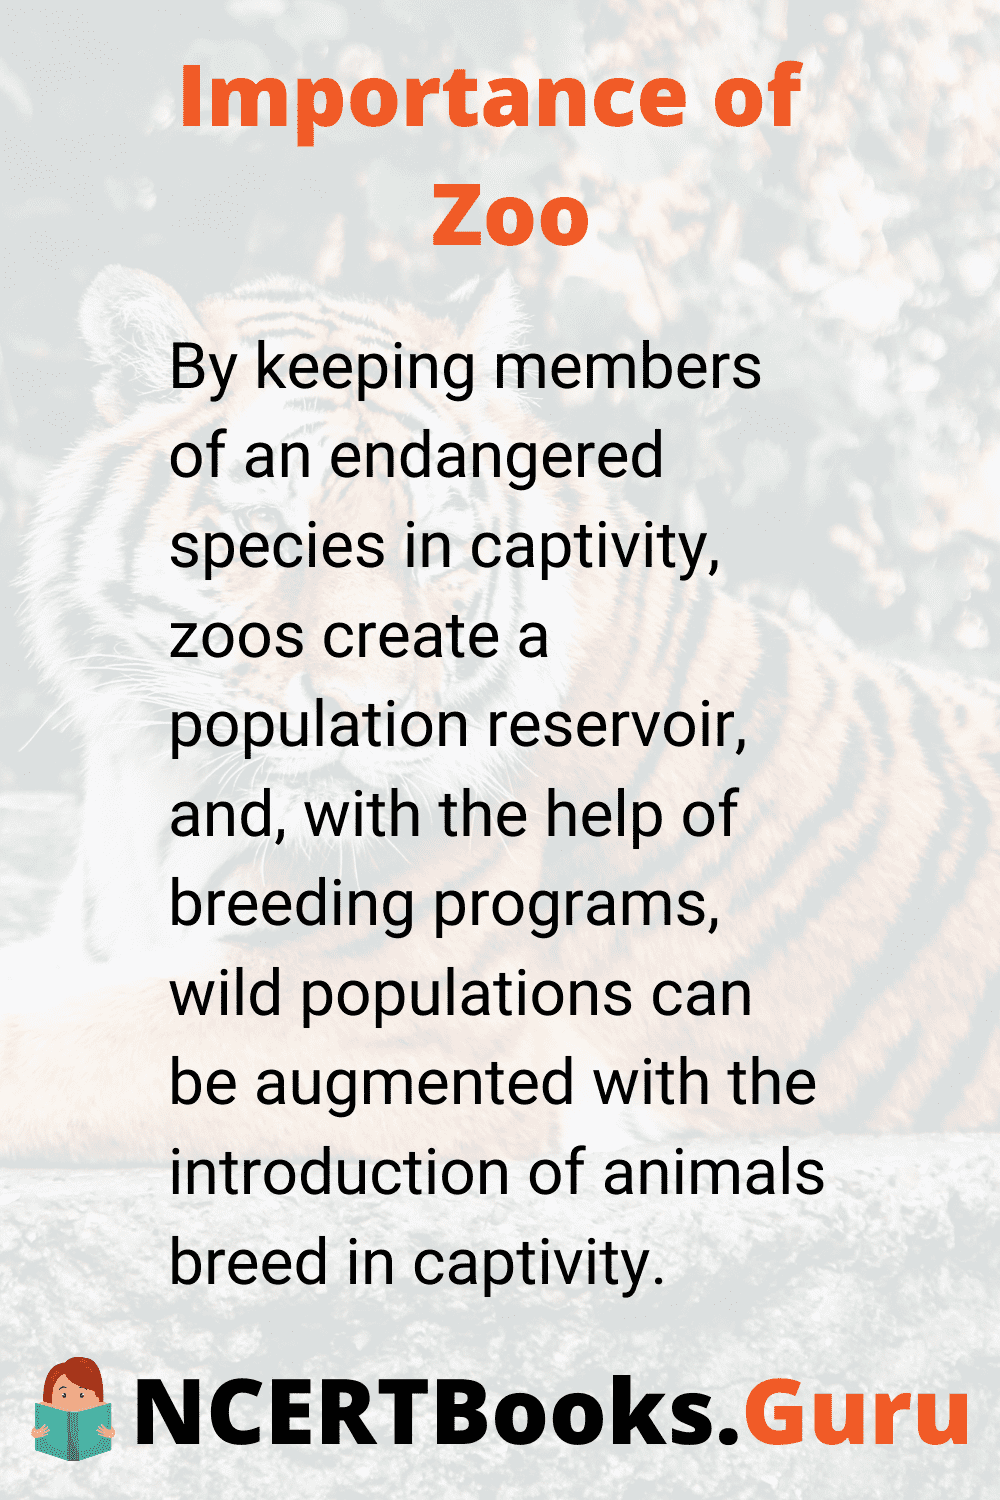 Importance of Zoo